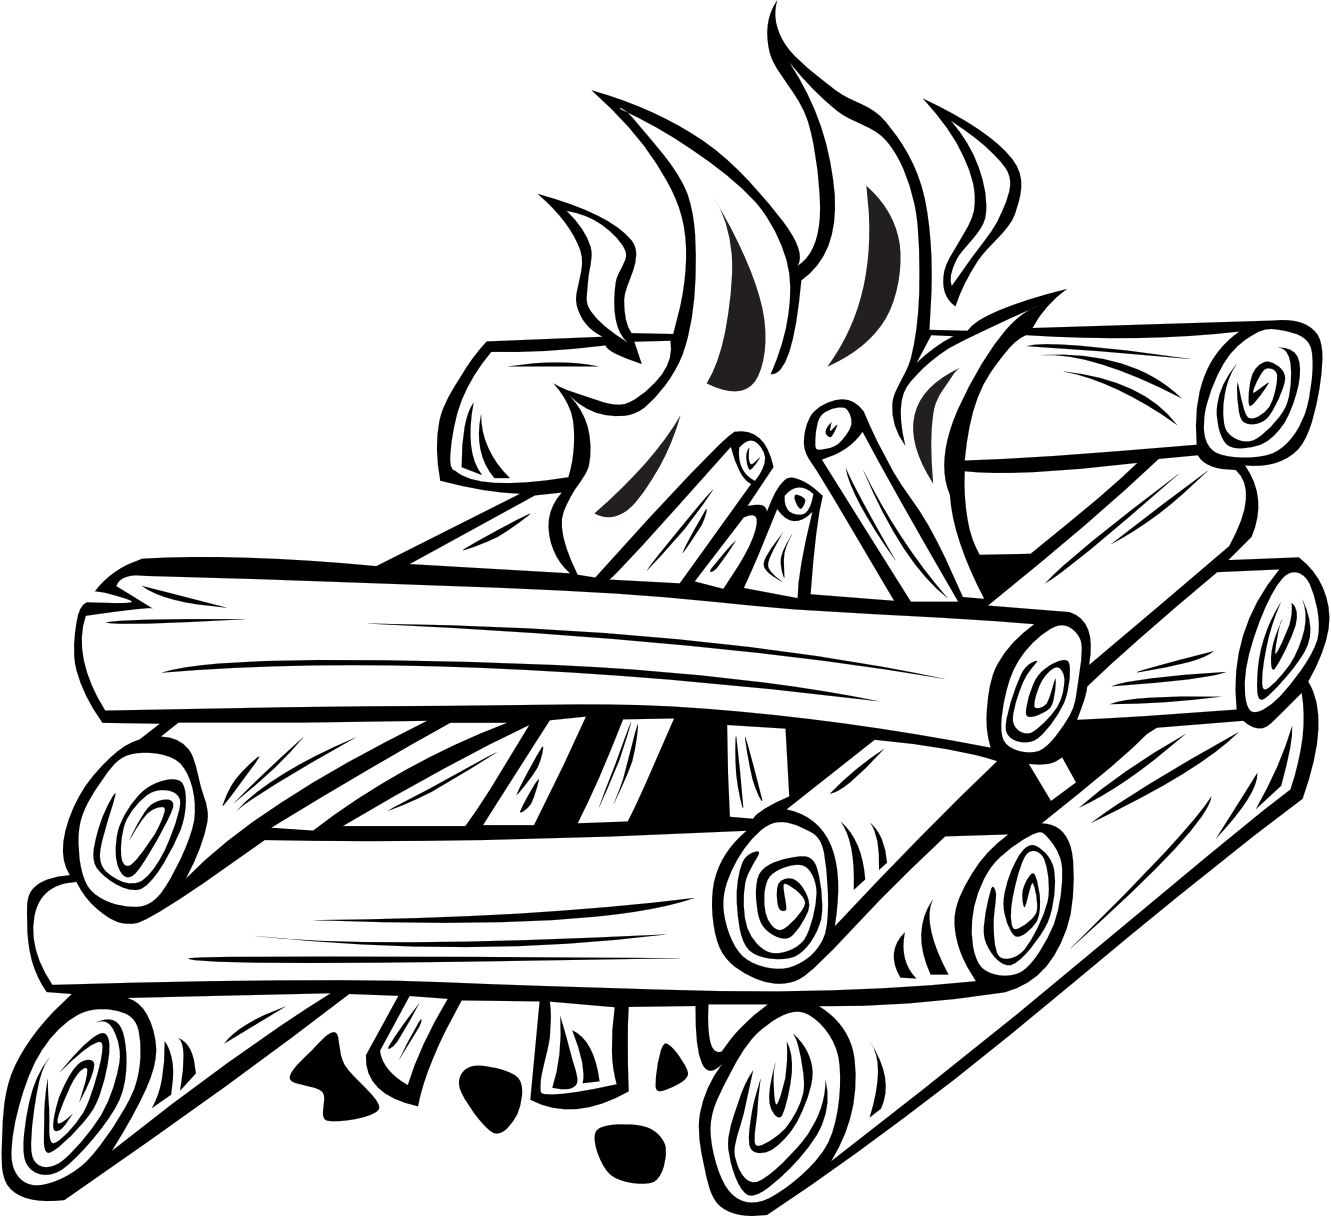 Clipart thanksgiving cooked black and white transparent download Black And White Campfire Clipart | Clipart Panda - Free Clipart Images transparent download